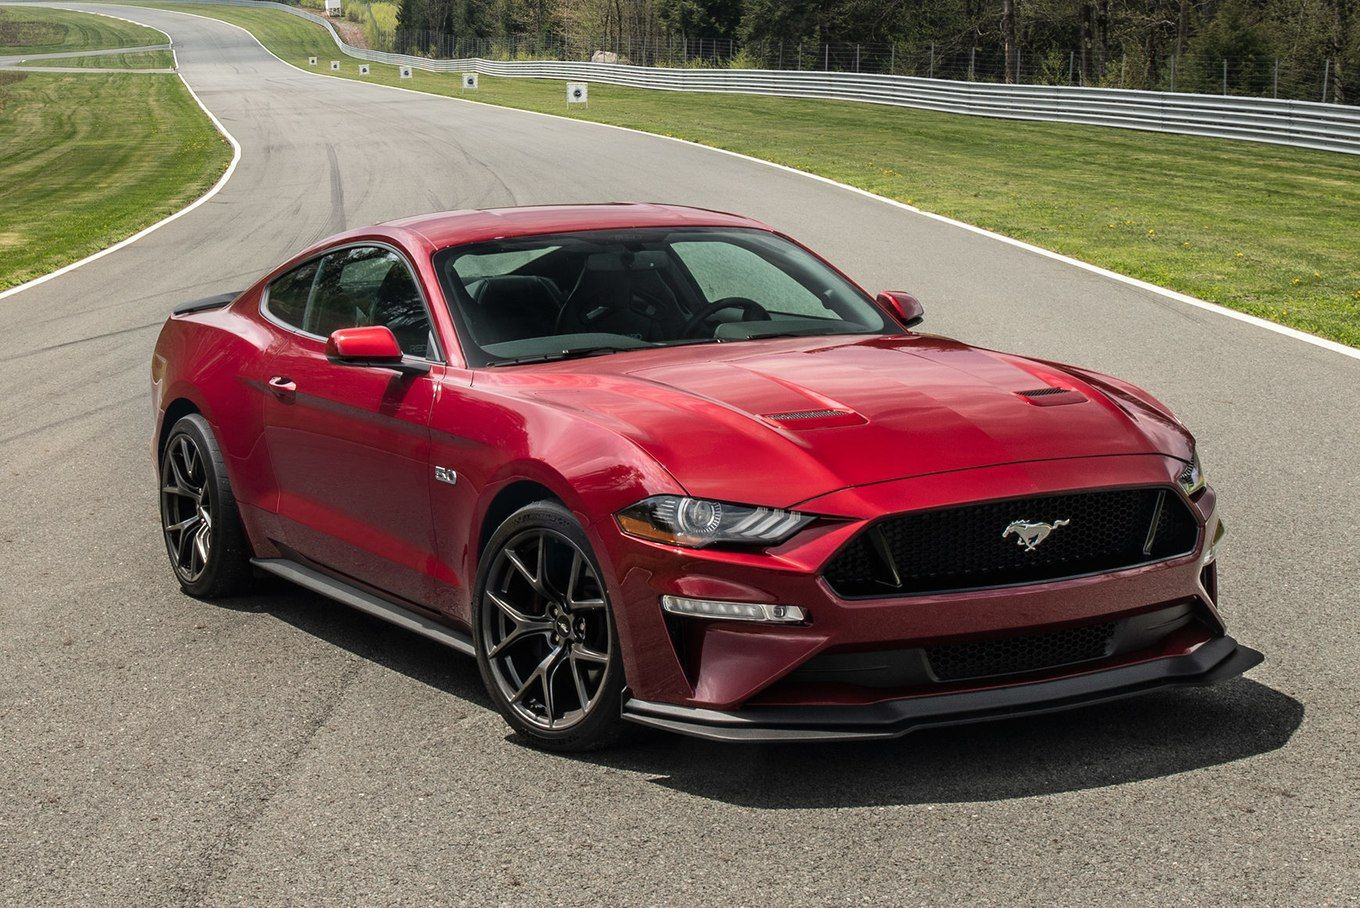 2018 Ford Mustang Gt Performance Pack 2 Review The 3 Second Tire